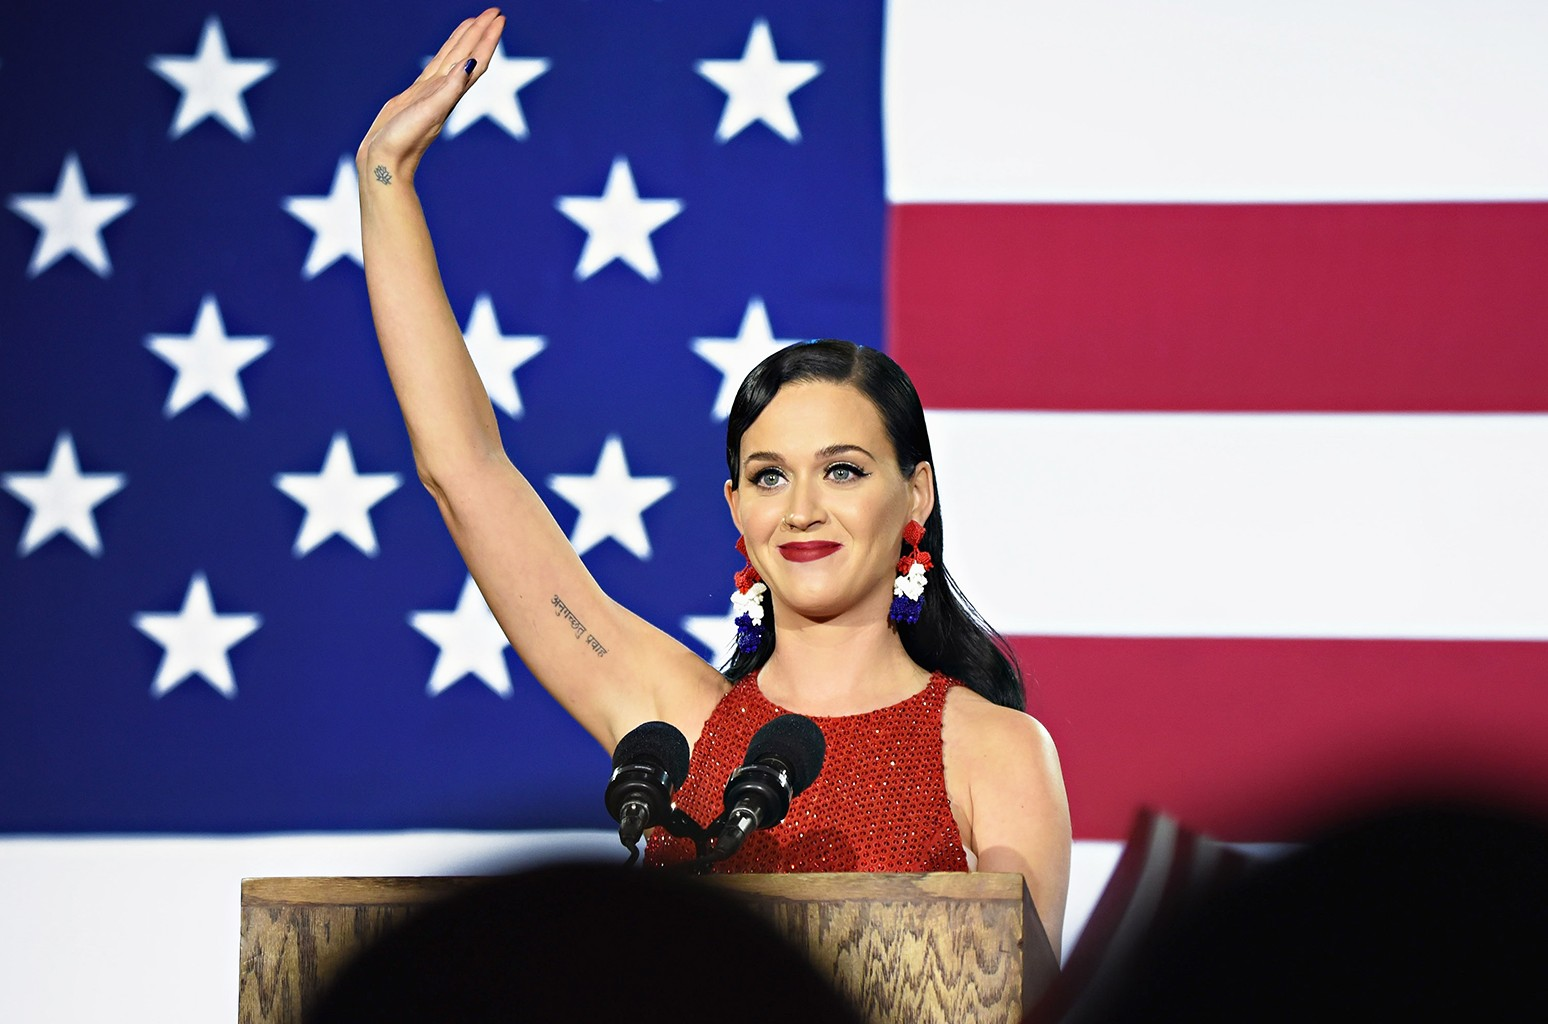 Katy Perry in 2016